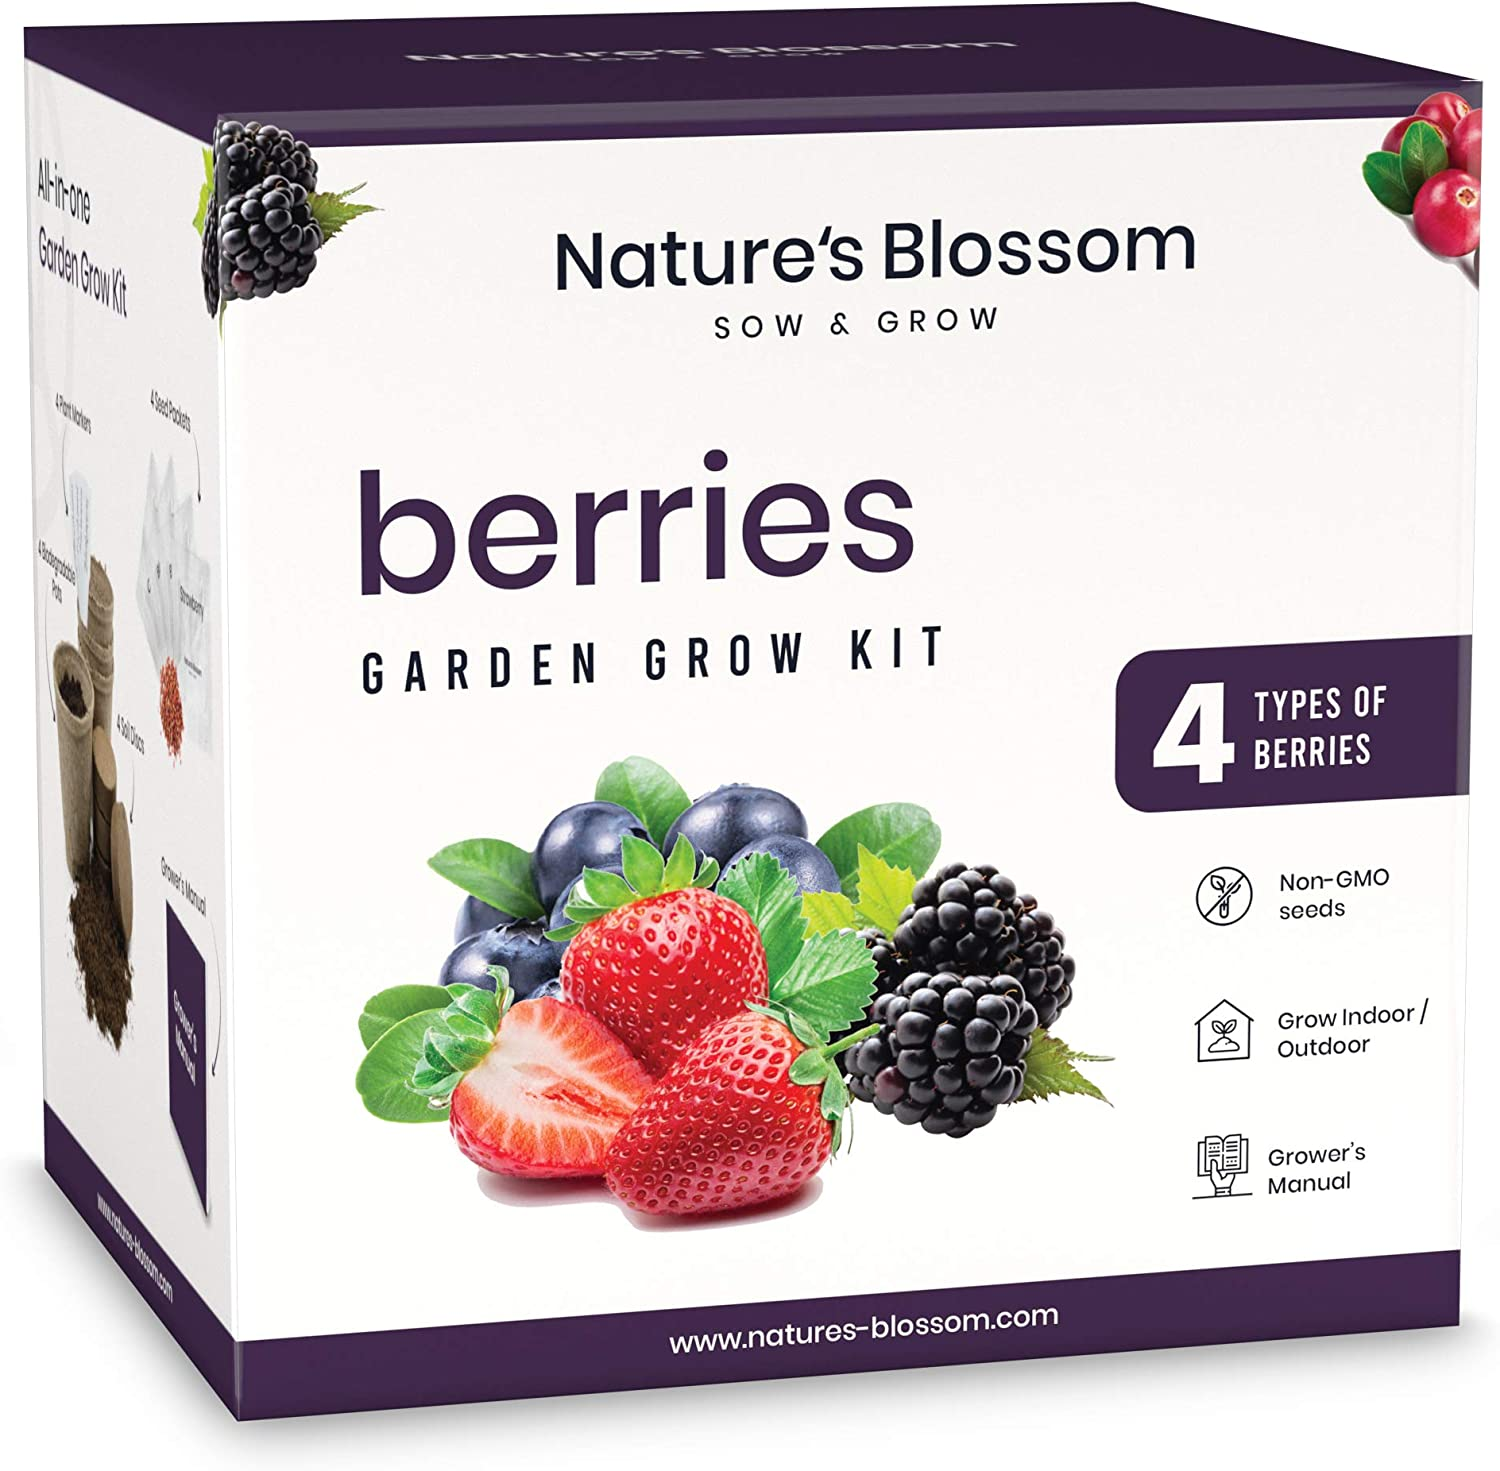 Nature's Blossom Sow and Grow Berries Seed Starter Kit - Beginners Gardening Set with Everything You Need to Grow 4 Different Fruits from Seeds. Fun Gift Idea for Men and Women